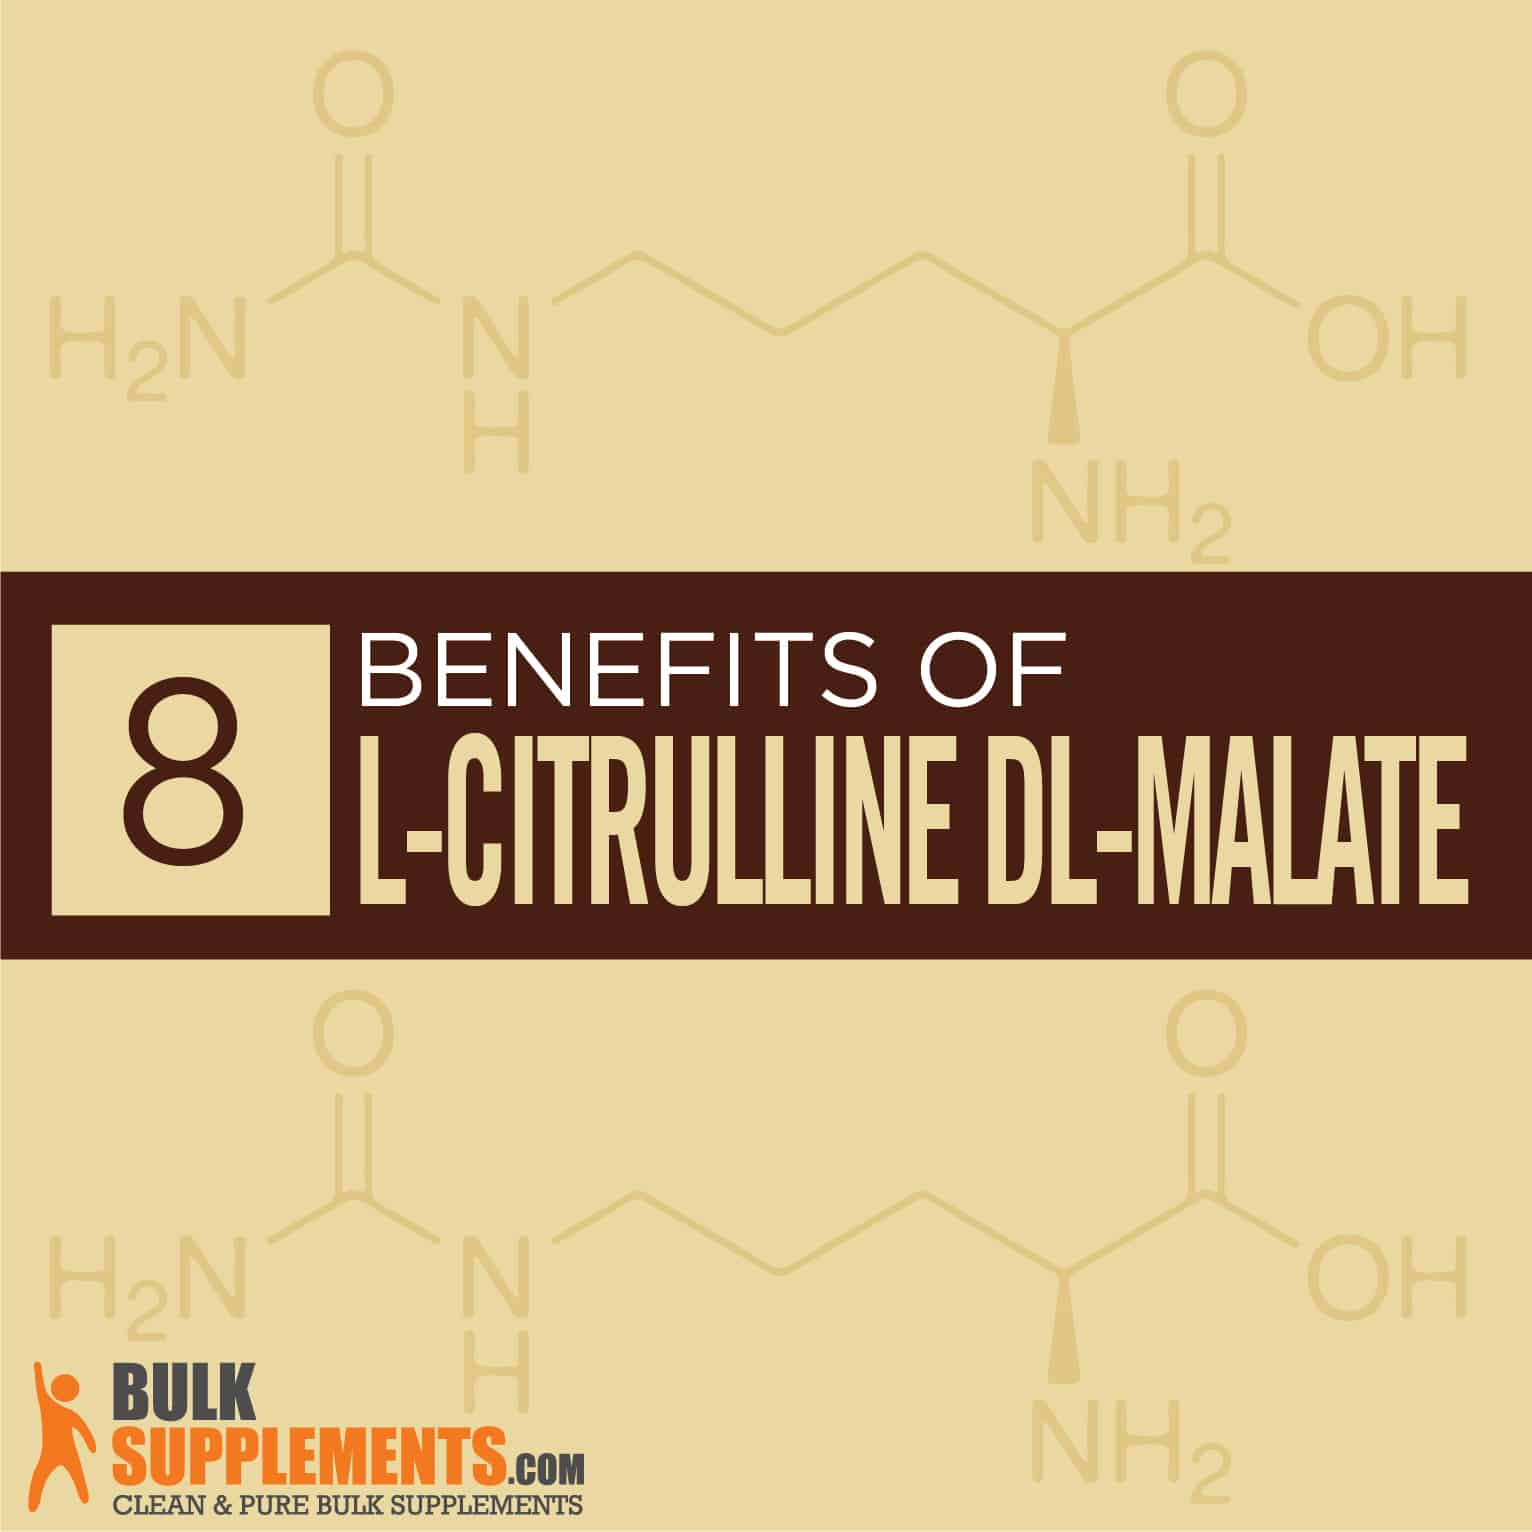 L-Citrulline DL-Malate